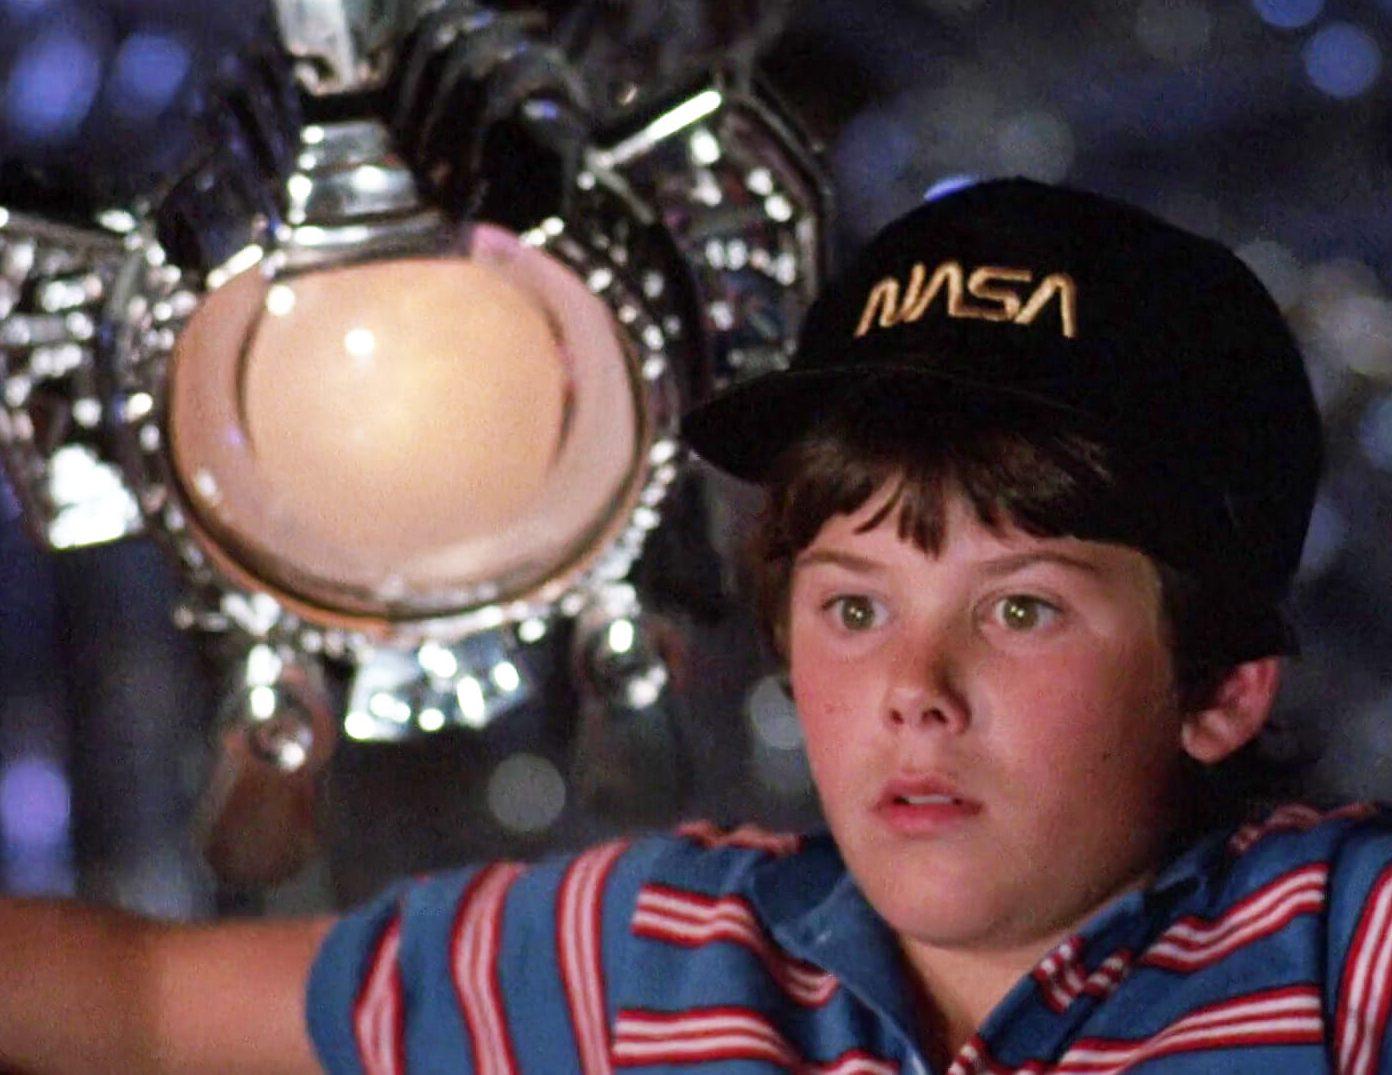 Flight of the navigator 1 e1621331806378 21 Things You Might Not Have Realised About Flight Of The Navigator